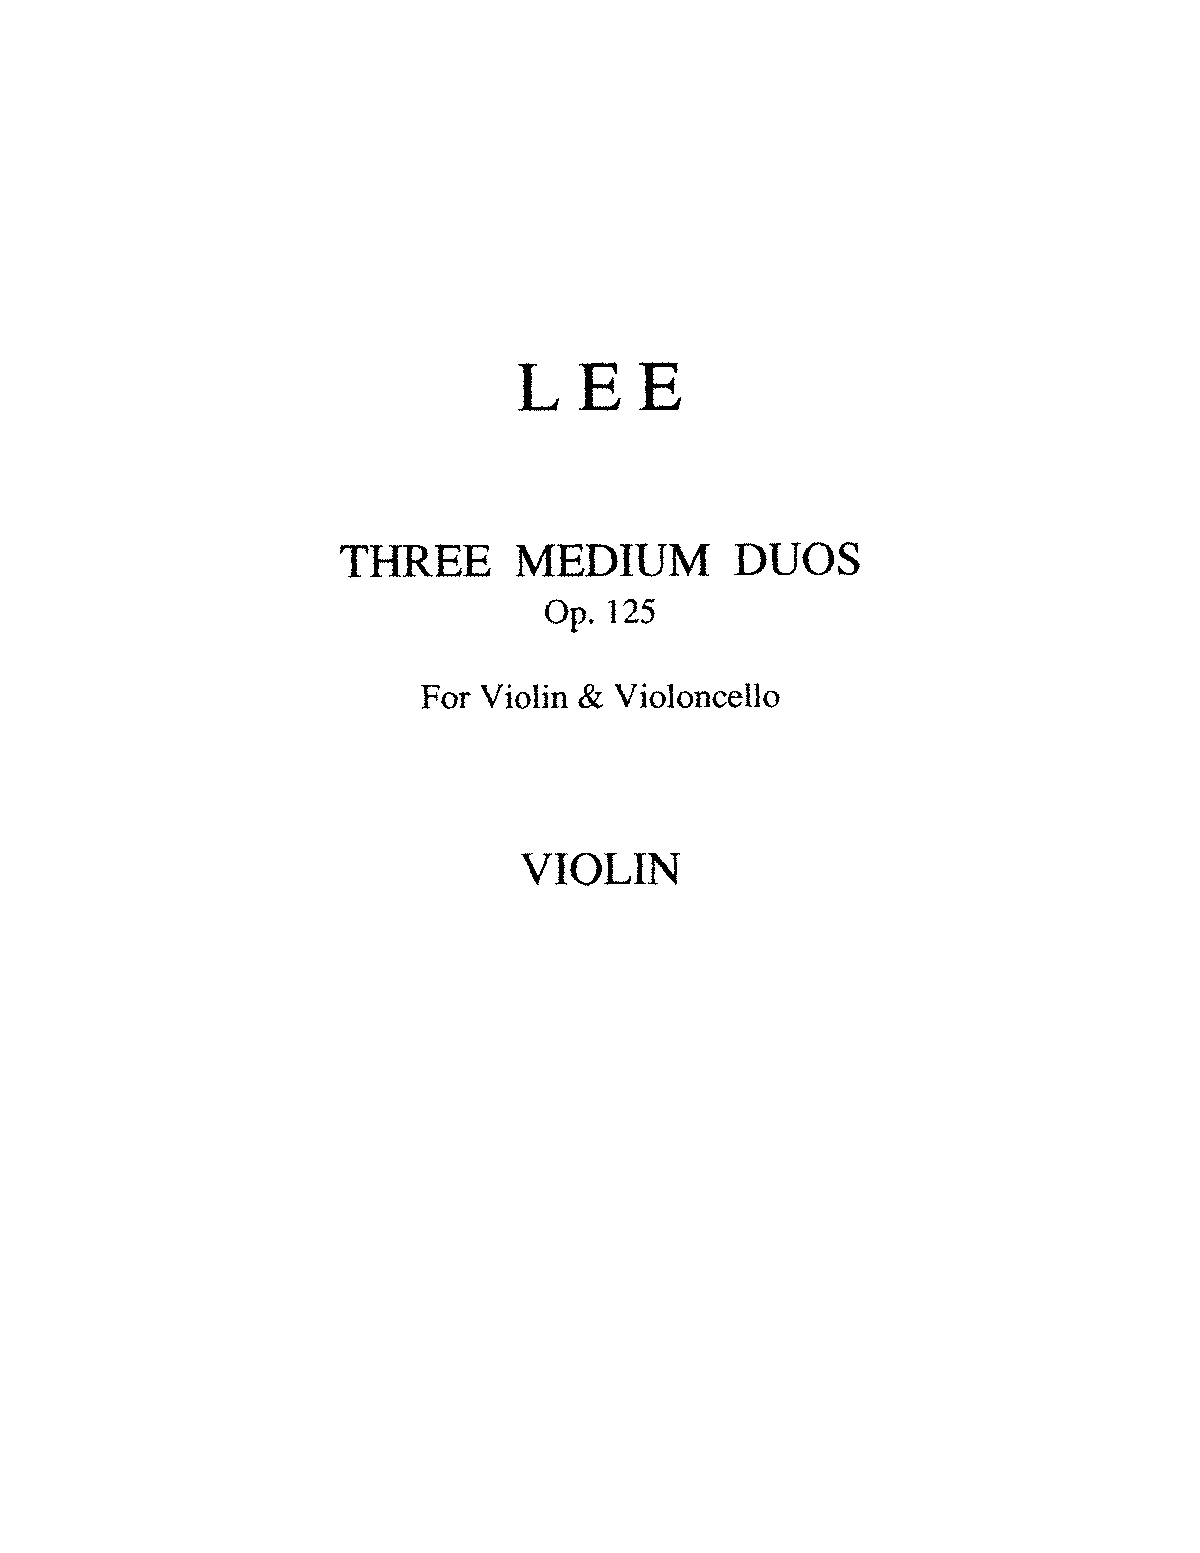 PMLP155940-LEE, Seb 3 Medium Duos Op. 125 VN VC.pdf